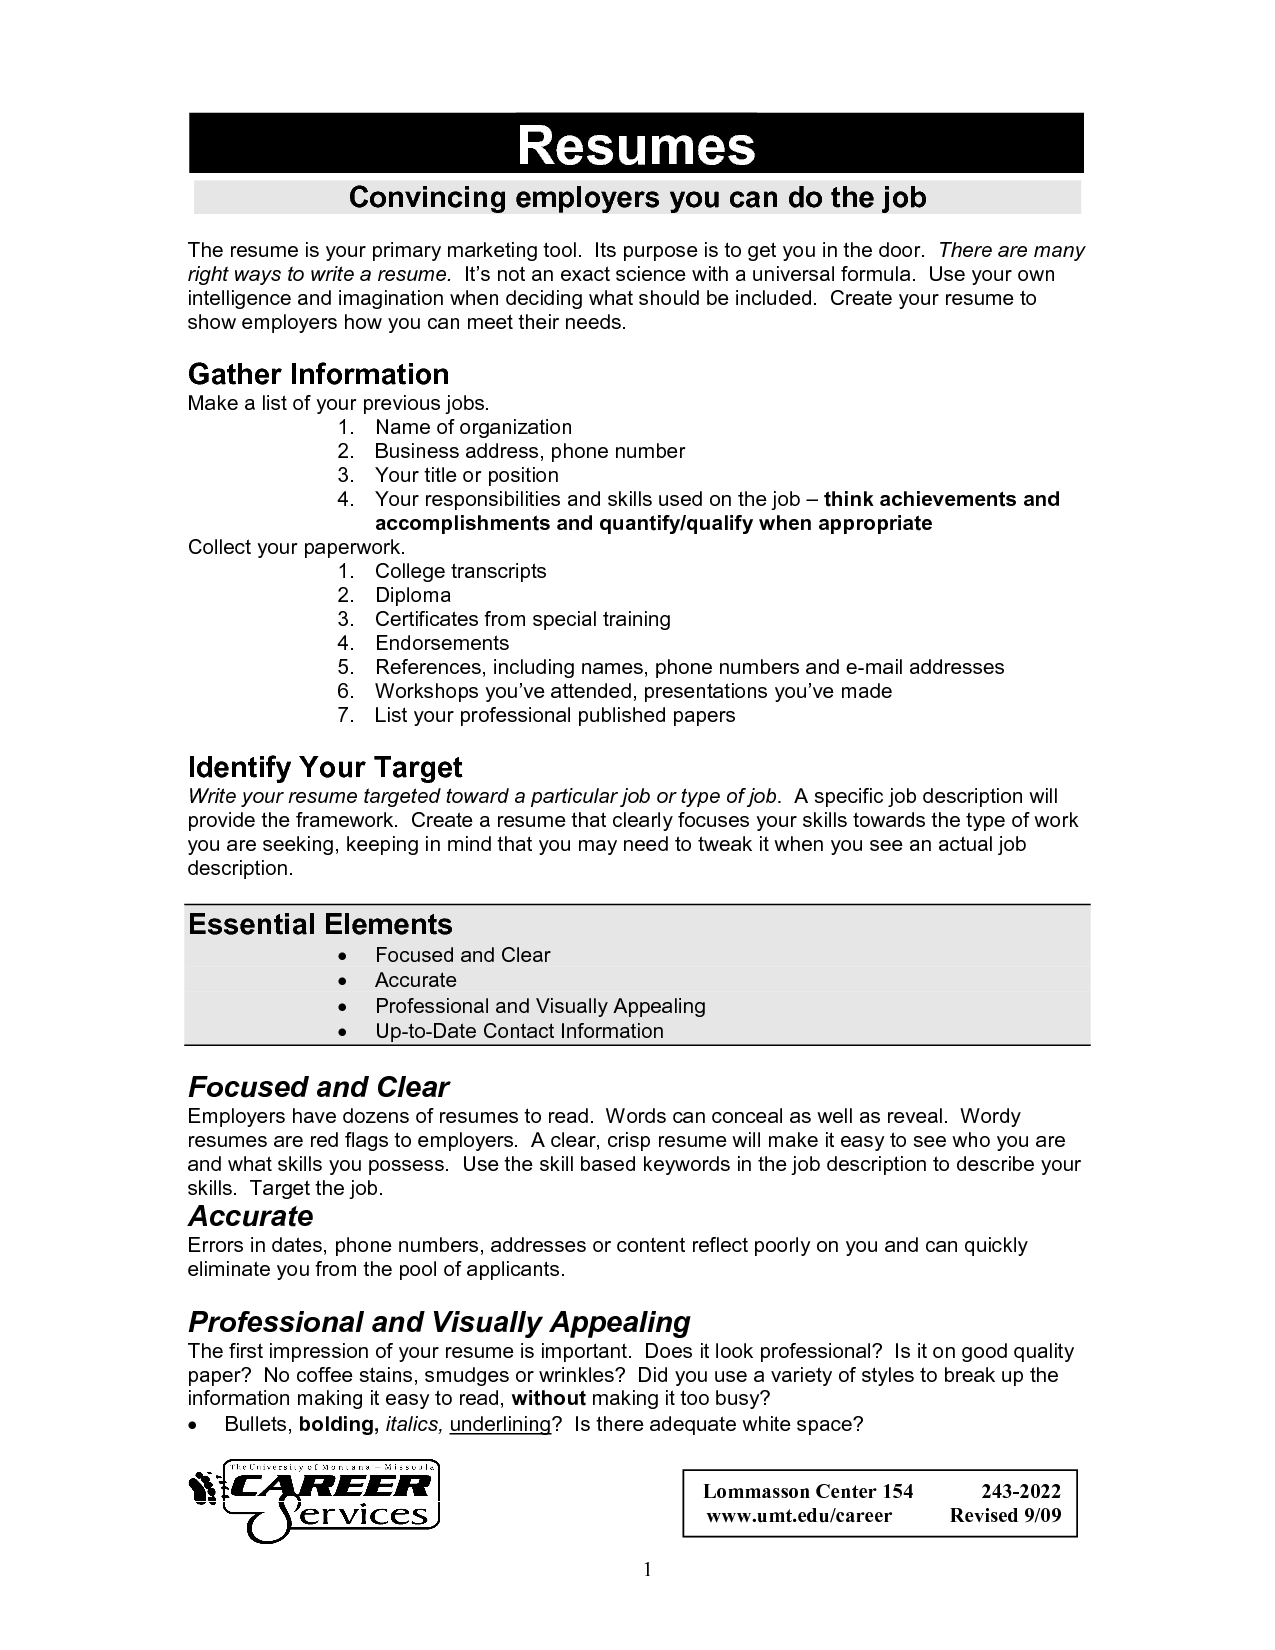 Good Job for KFC Resume Example Examples Of First Job Resumes kfc team member duties and responsibilities